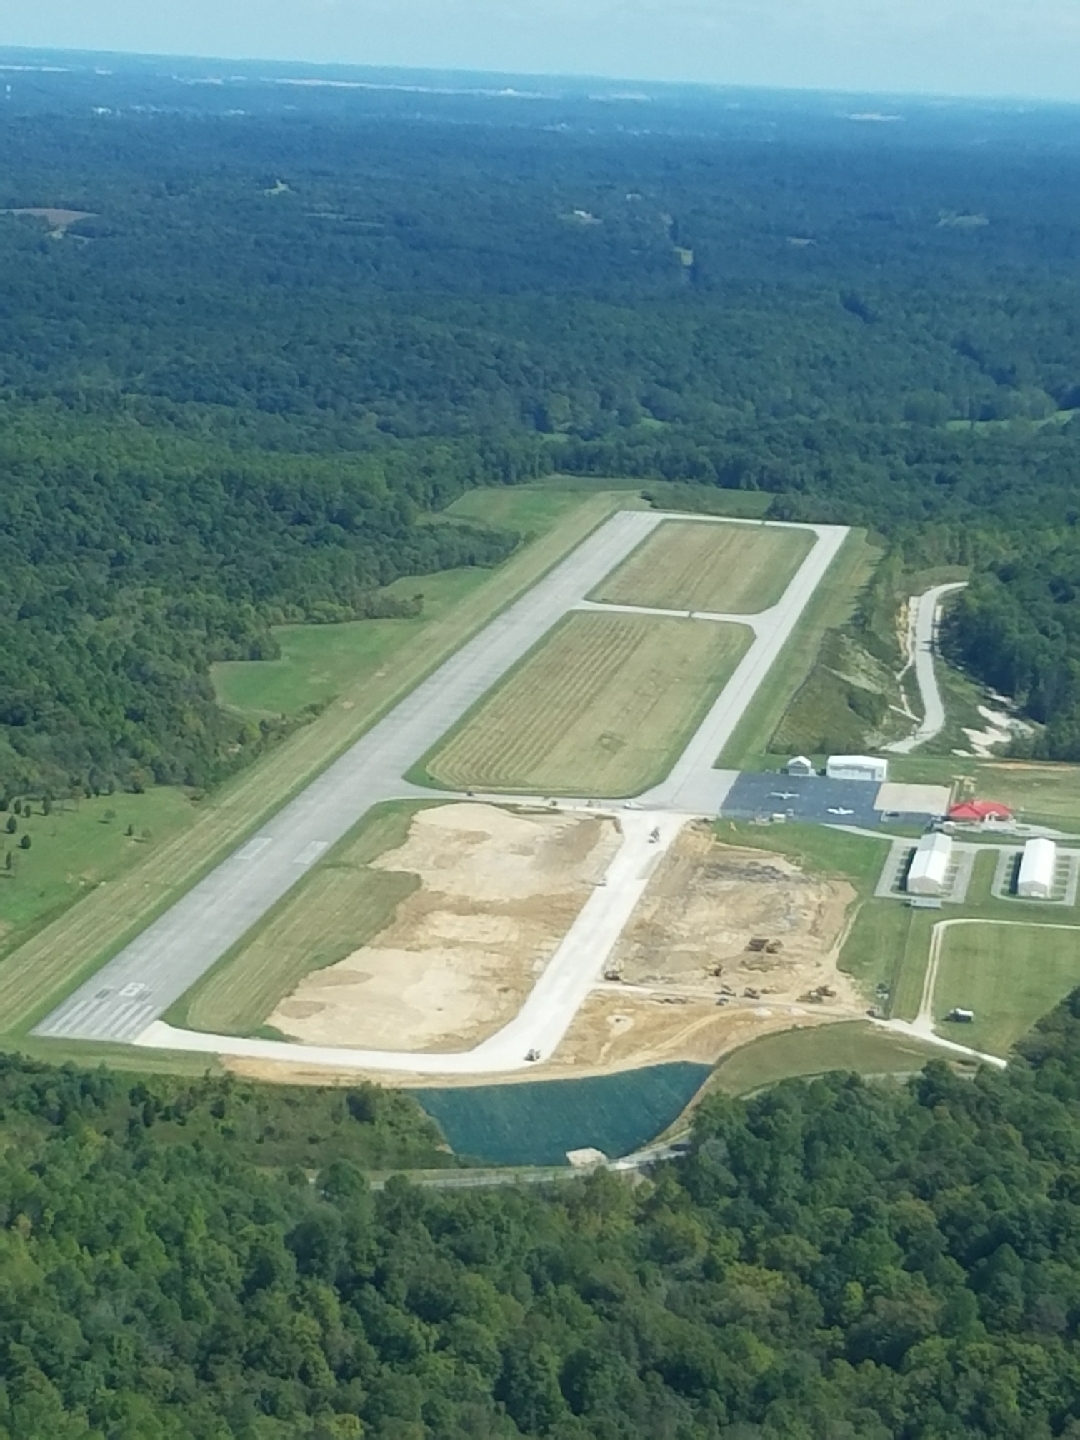 New in the Fall of 2017 - Taxiway A Rehab Project Underway